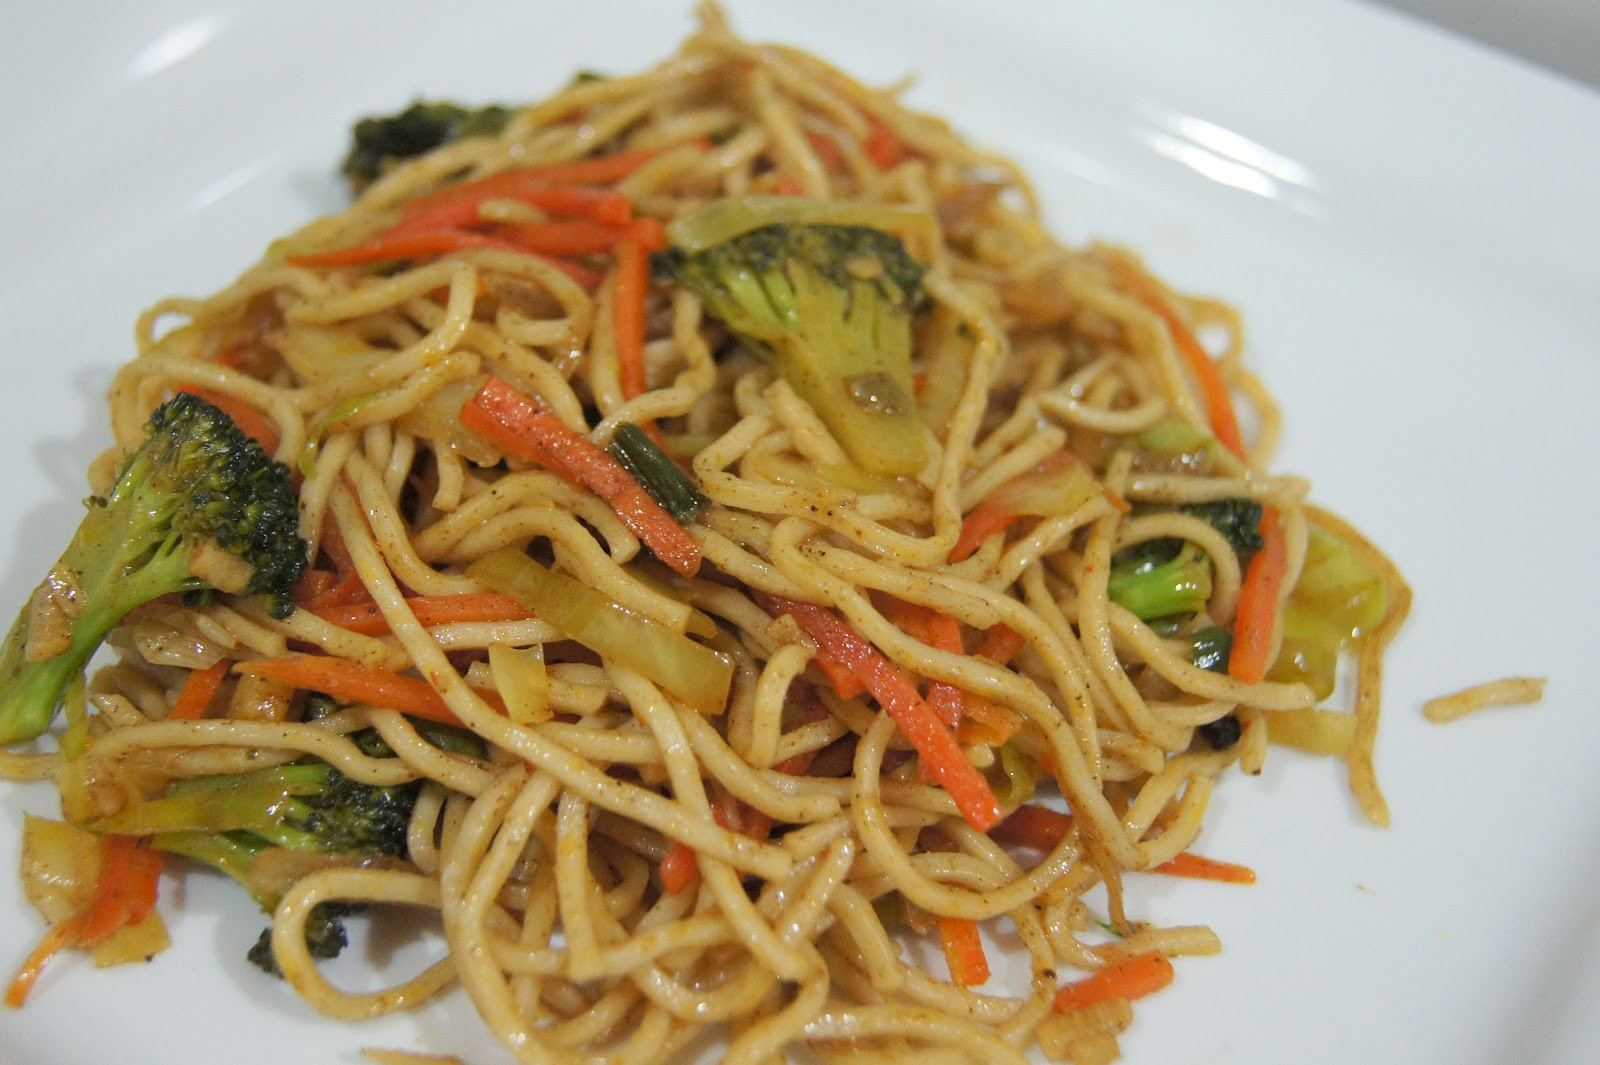 Easy Chinese Food Recipes  Simple Ve arian Recipes Chinese Five Spice Noodles